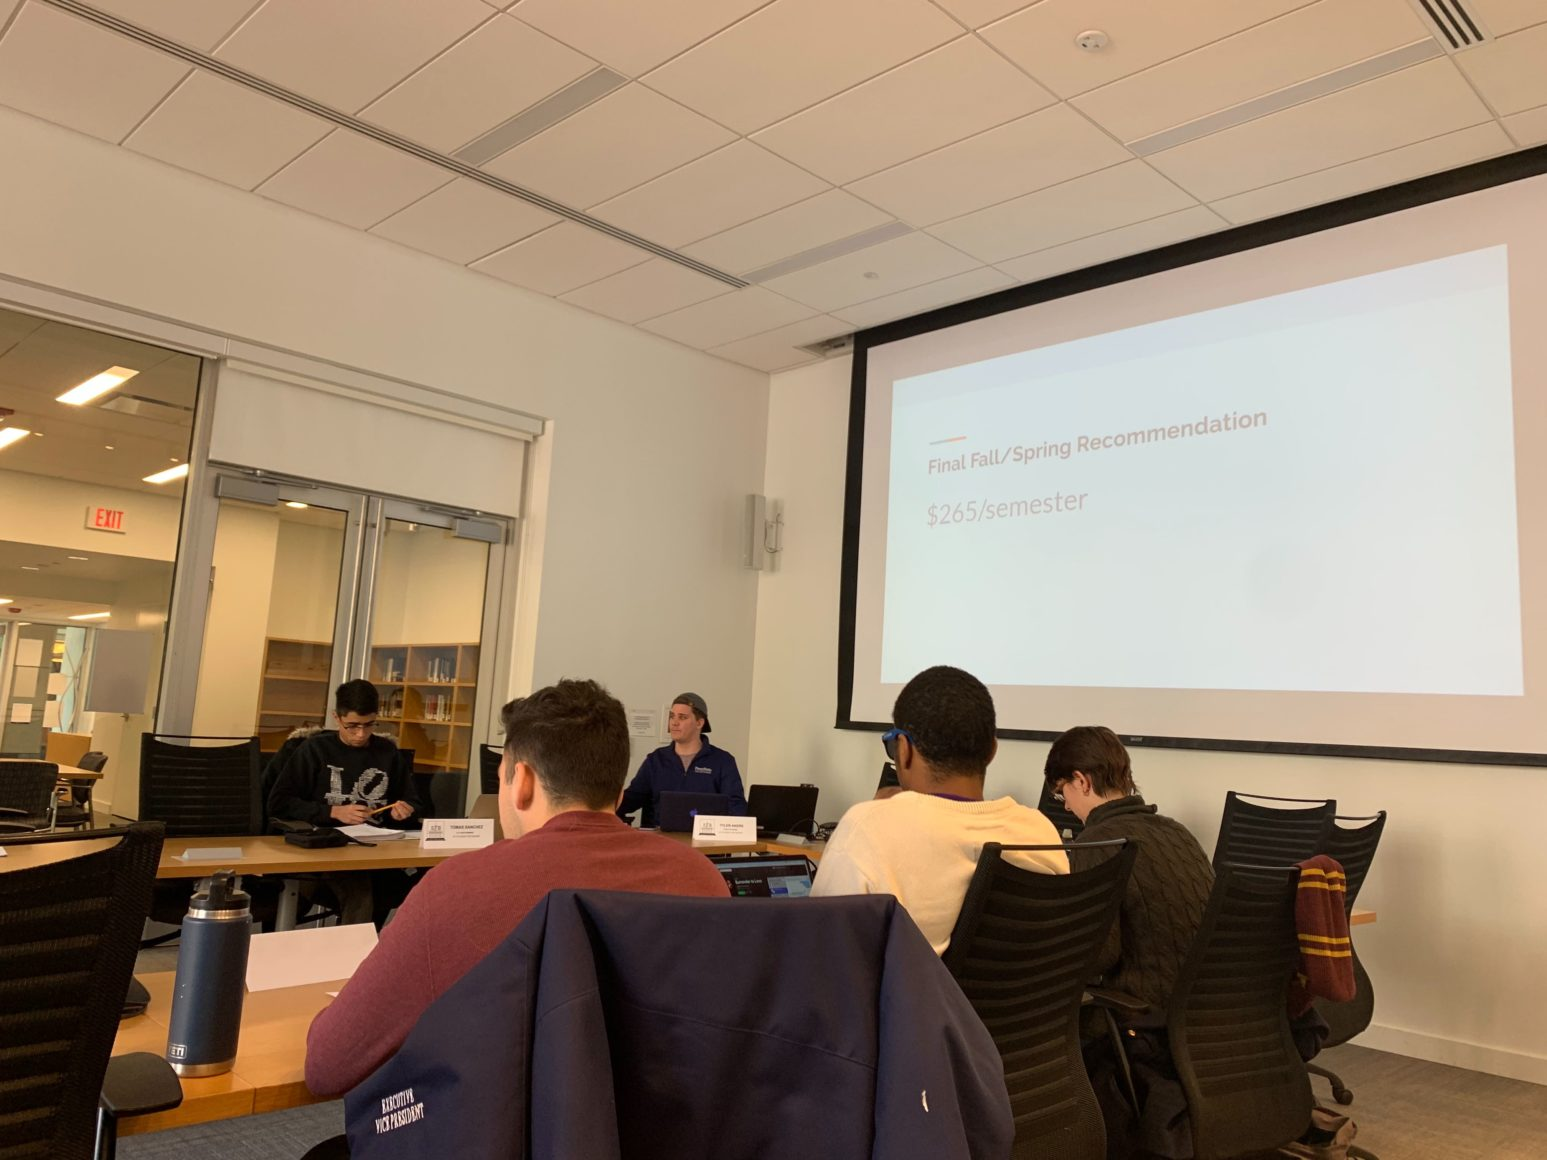 Student Fee Board Recommends Flat $265 Per Semester Student Fee For 2020-2021